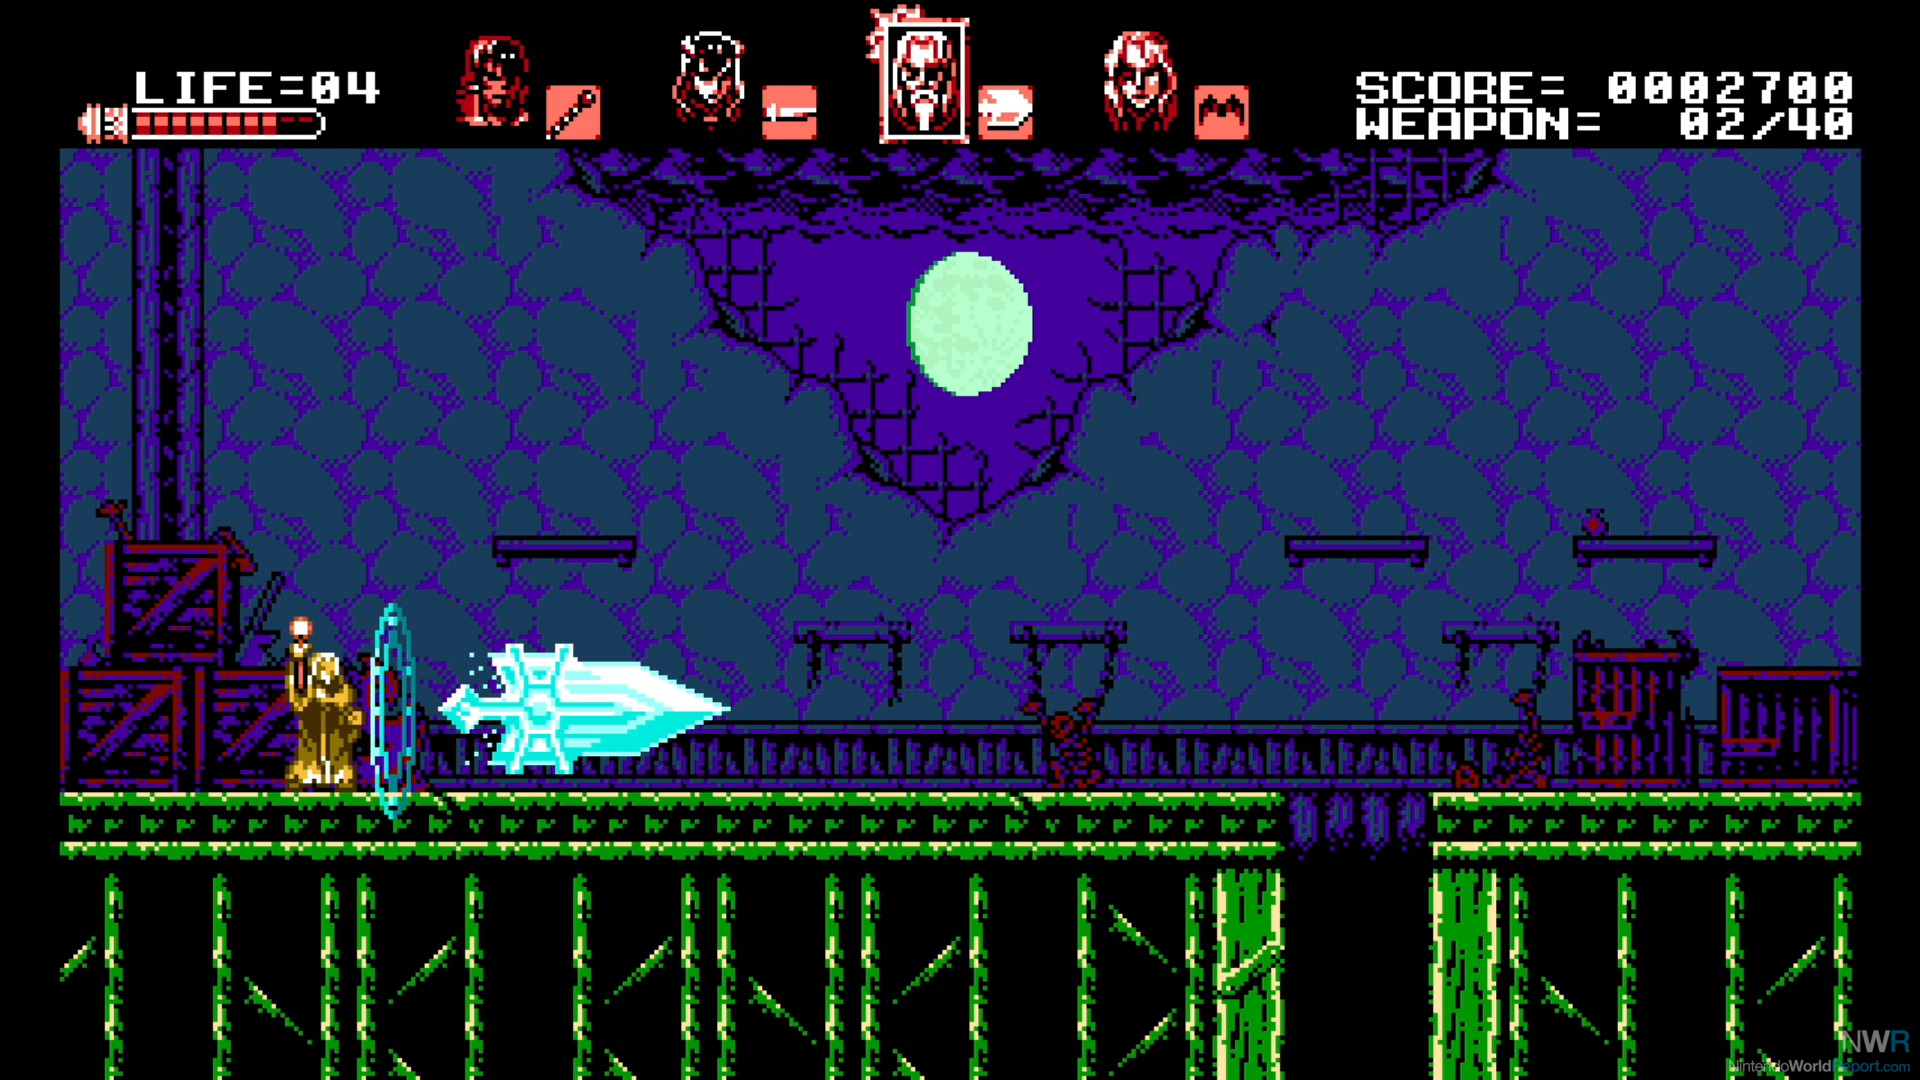 'Bloodstained: Curse of the Moon' summons 8-bit 'Castlevania' charm